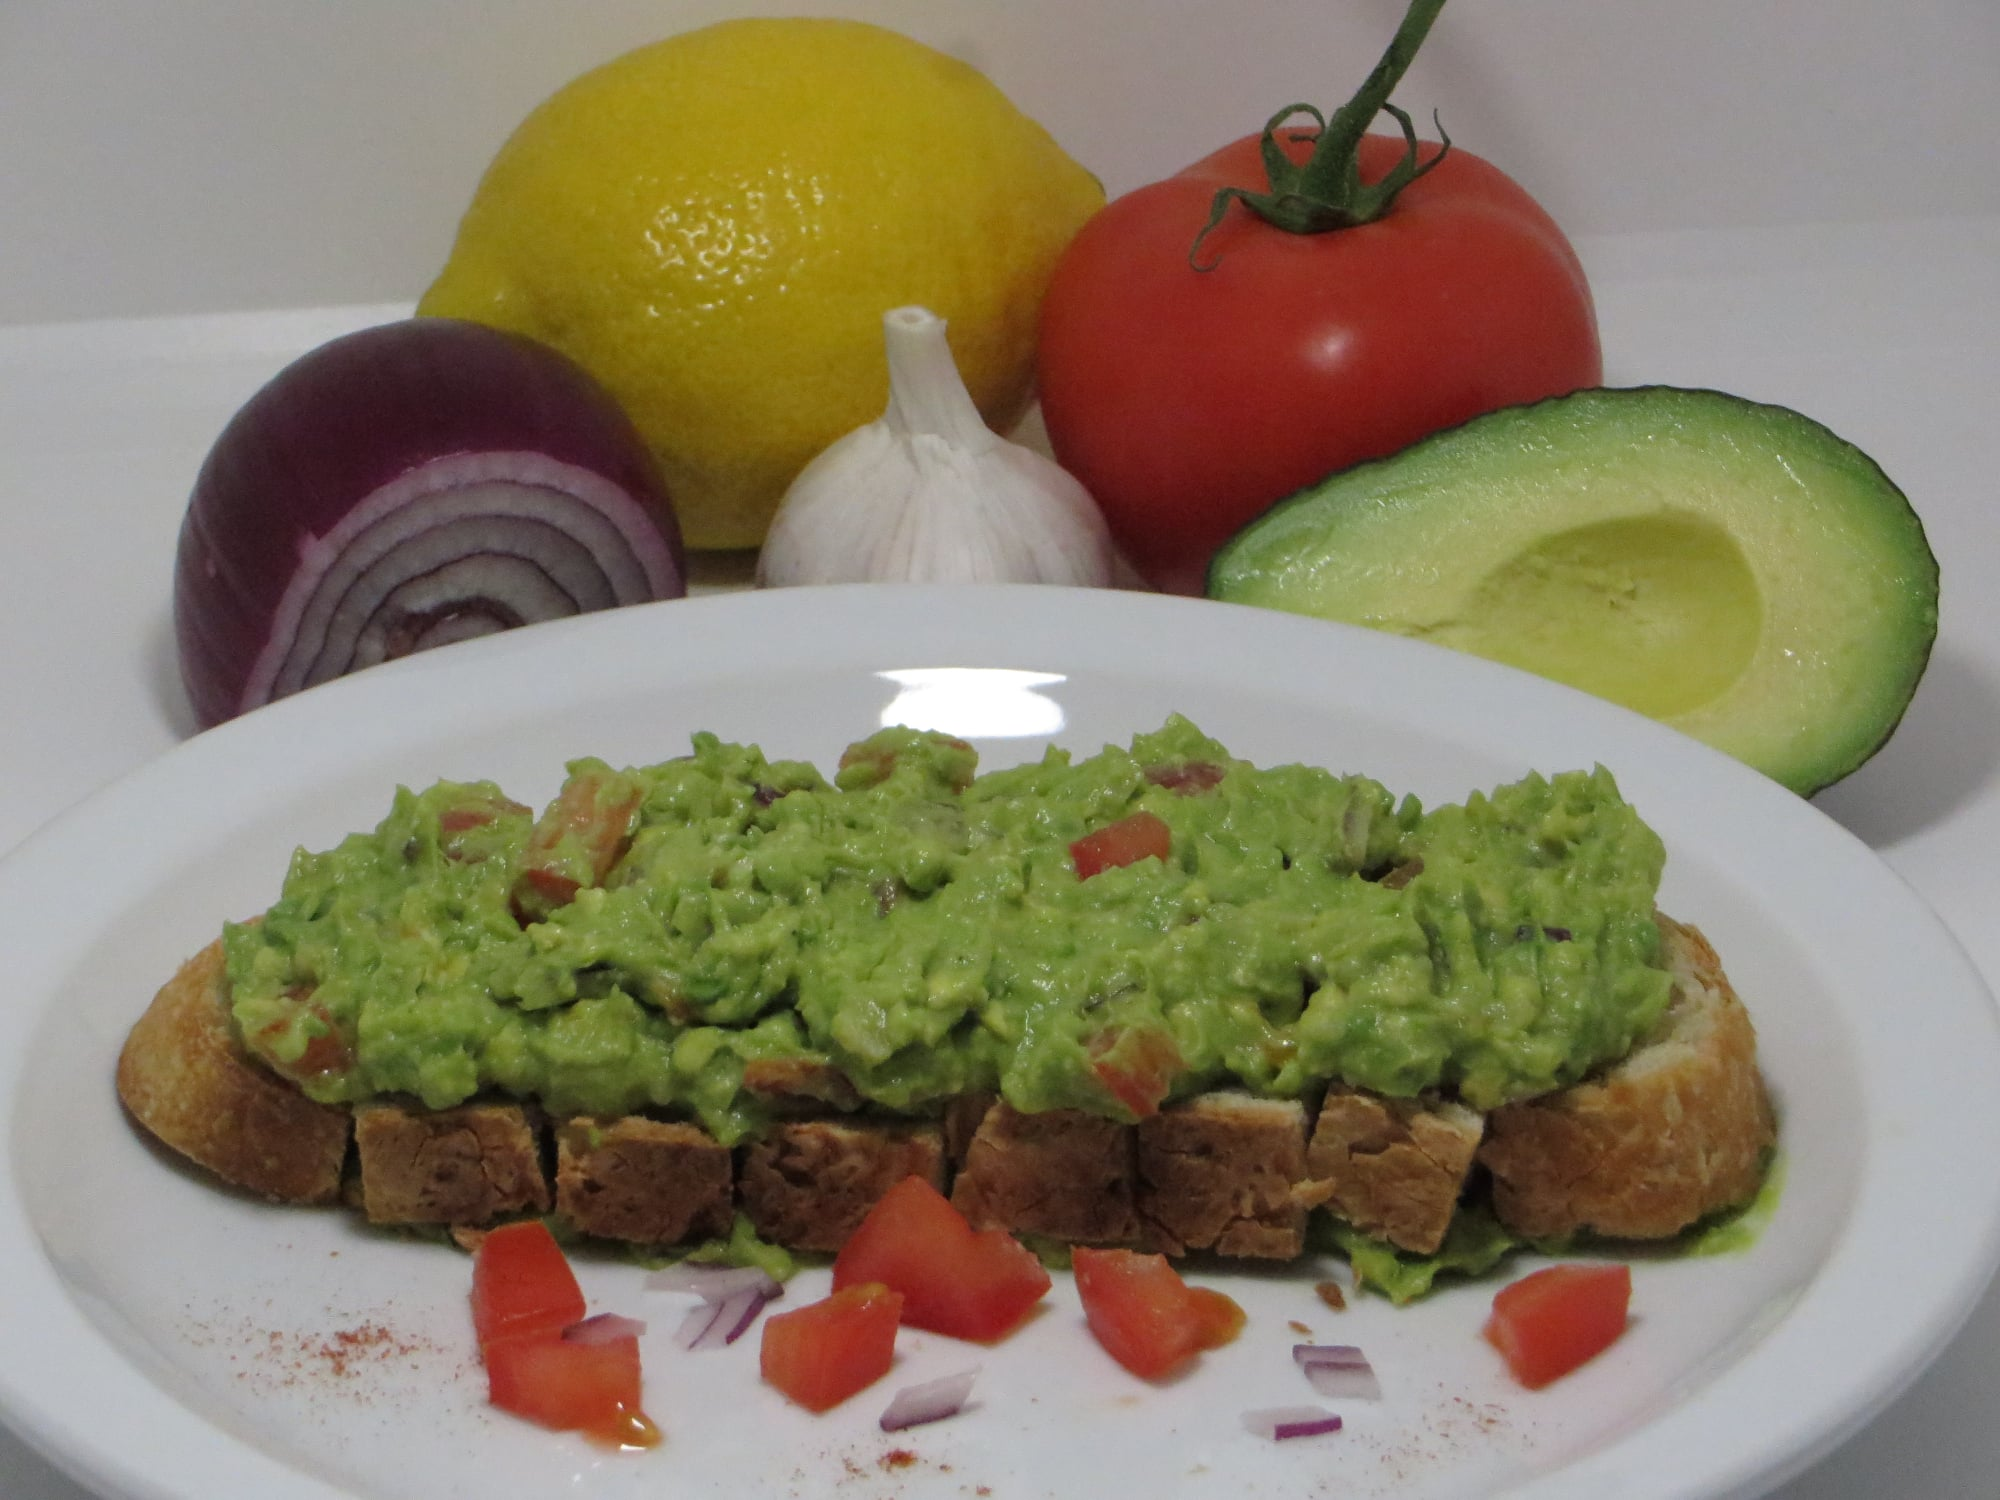 Avocado-Guacamole (Onion, Tomato, Garlic, Lemon) on Toast